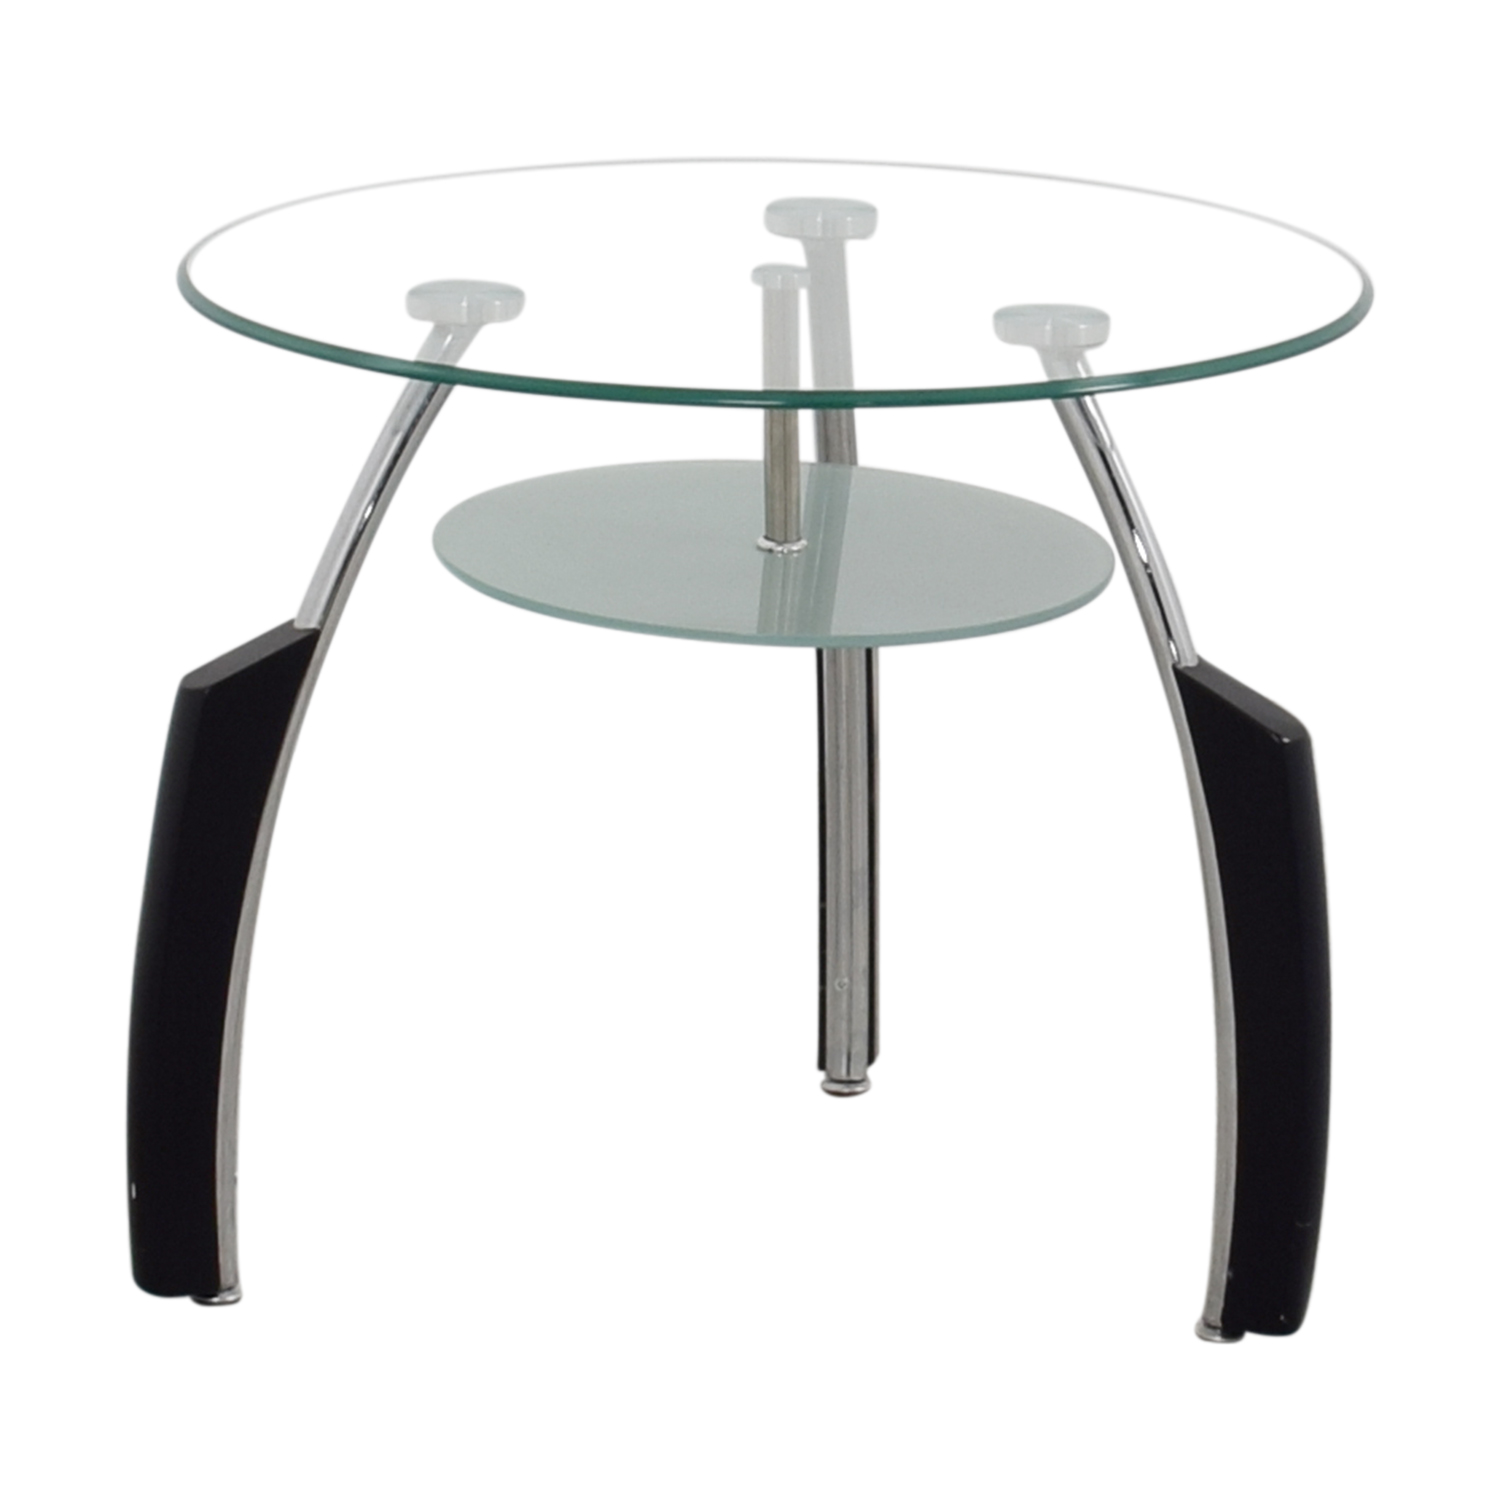 round glass end tables. Round Glass End Table On Sale Tables L